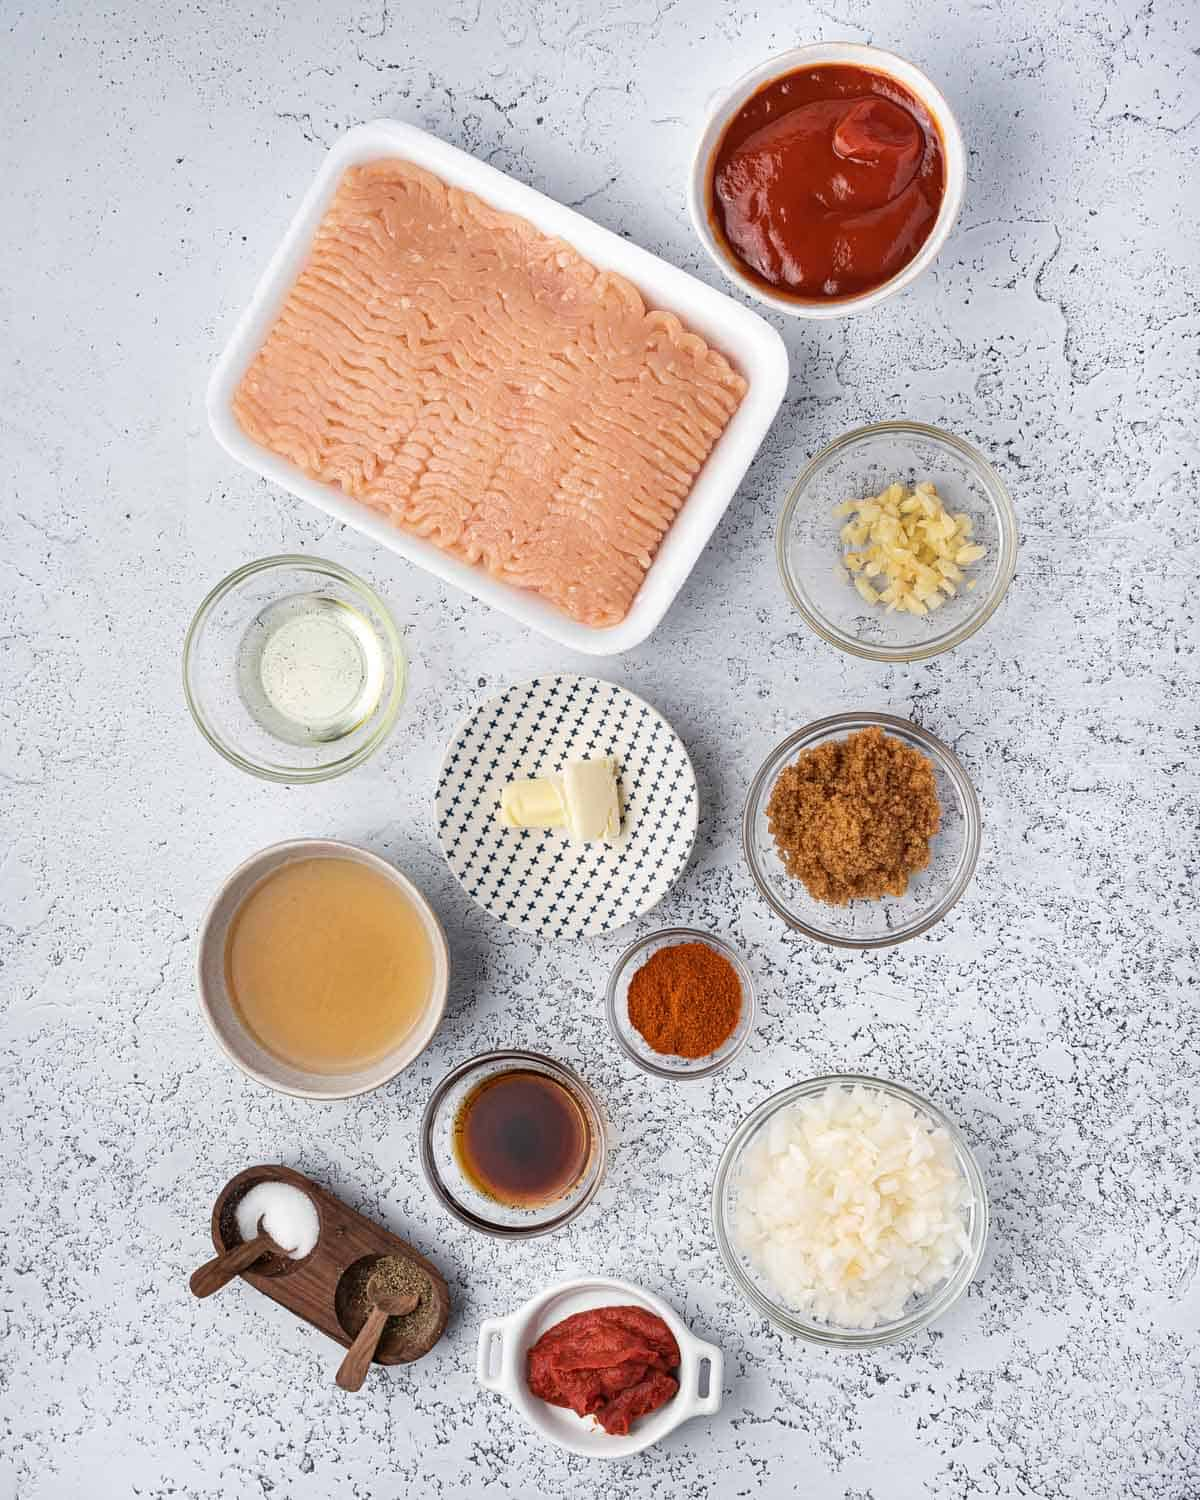 Ingredients needed to make chicken sloppy joes.